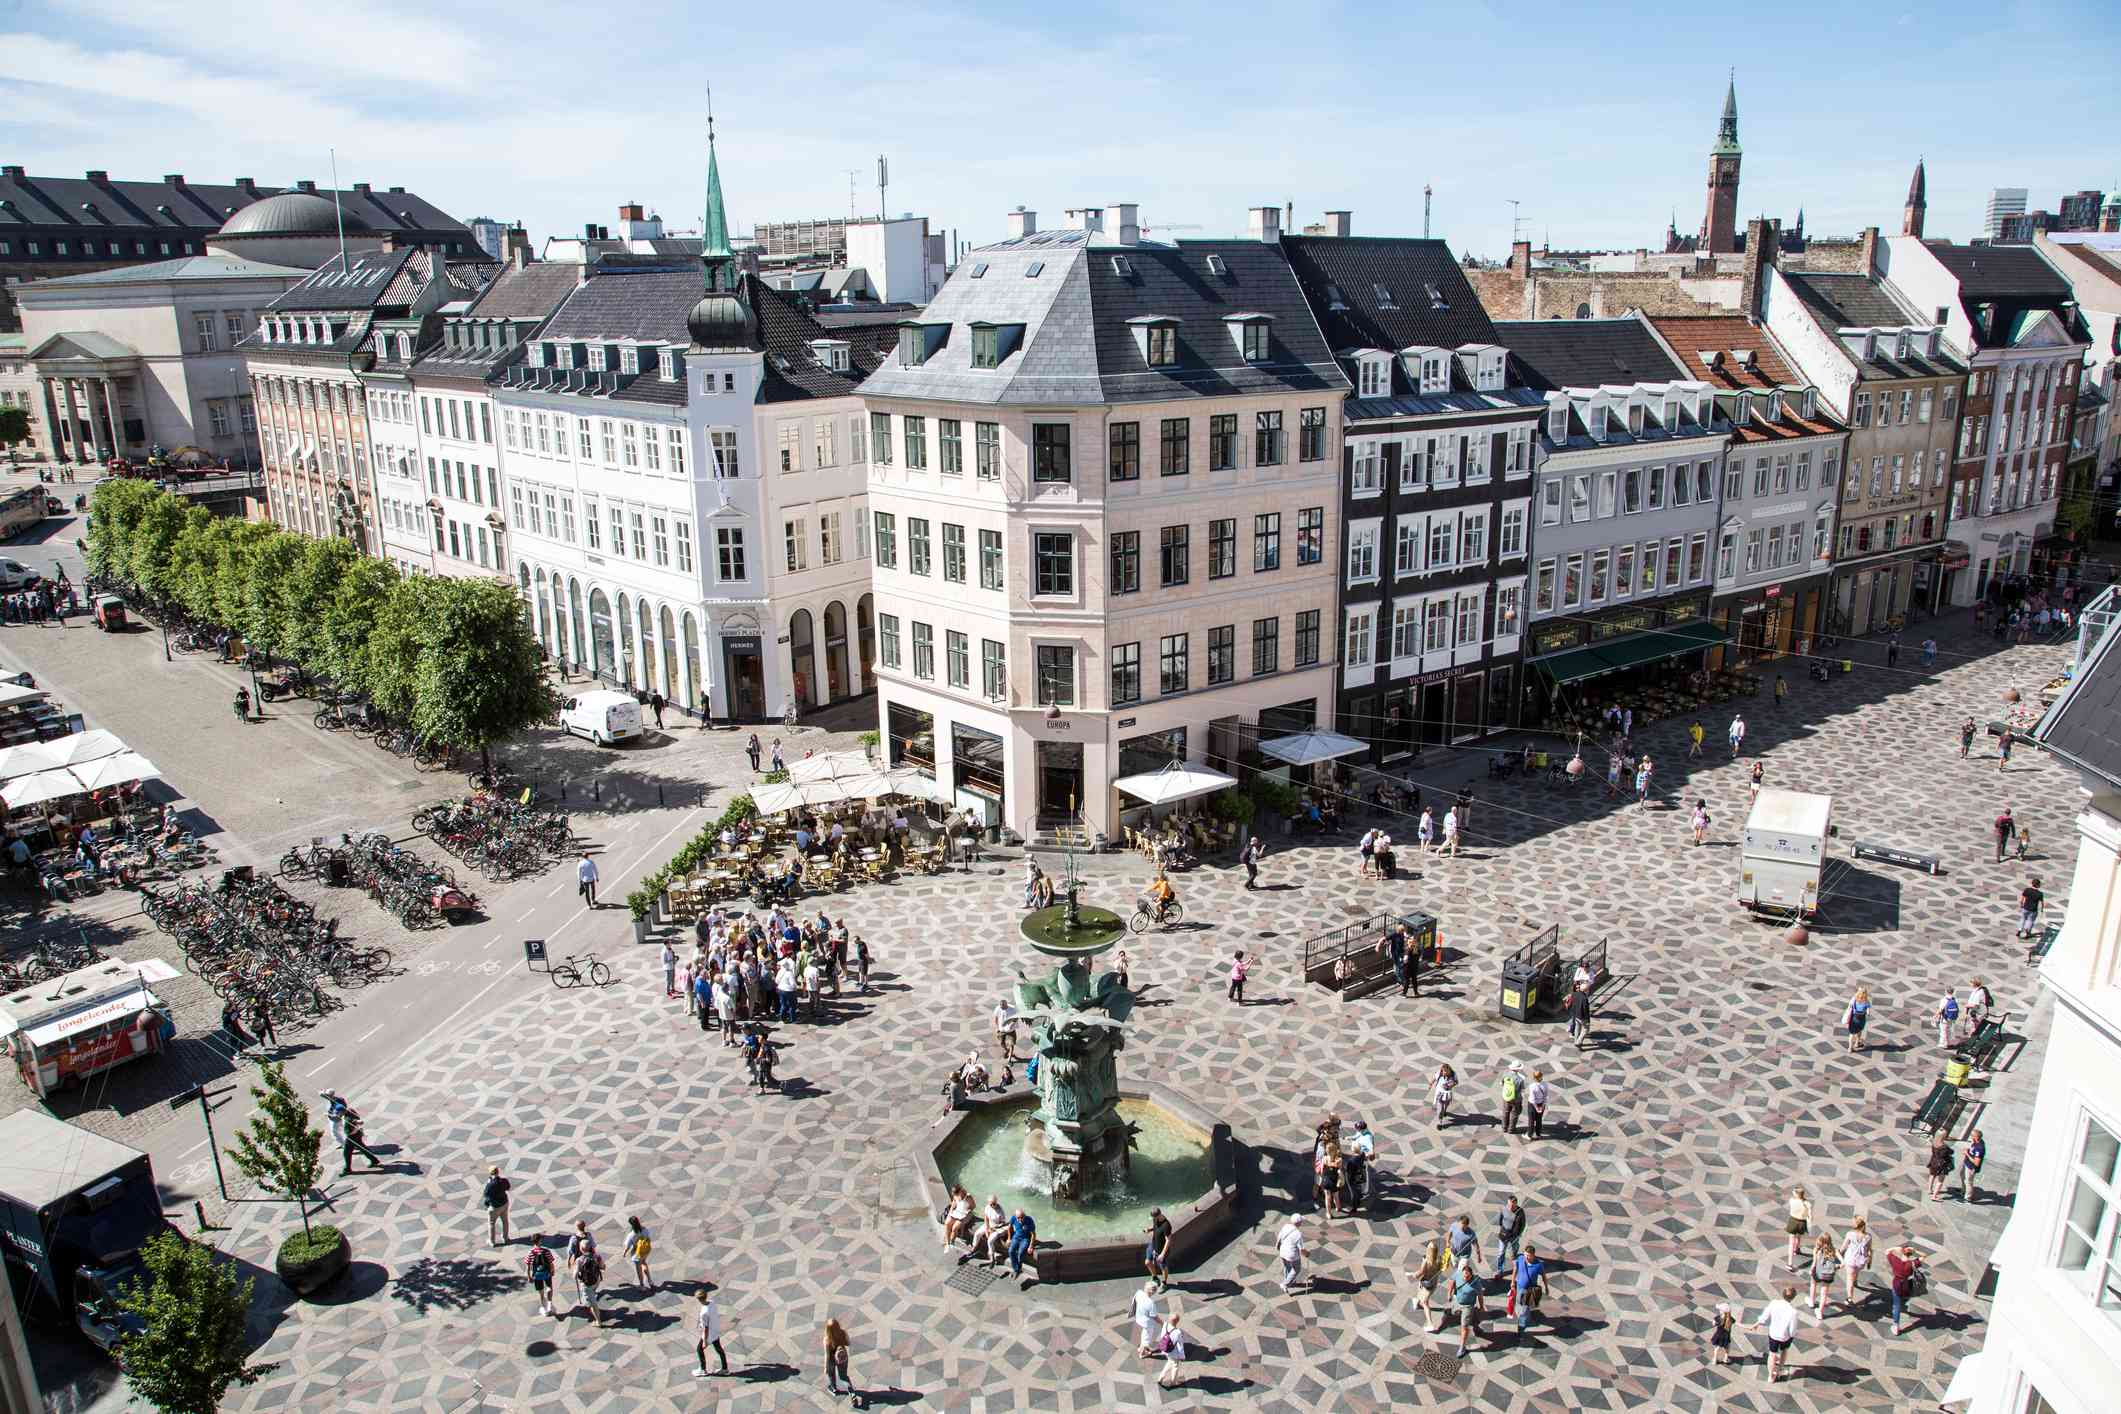 aerial view of a shopping area with wide, decorative tile walkways surrounding a green fountain at Strøget in Copenhagen